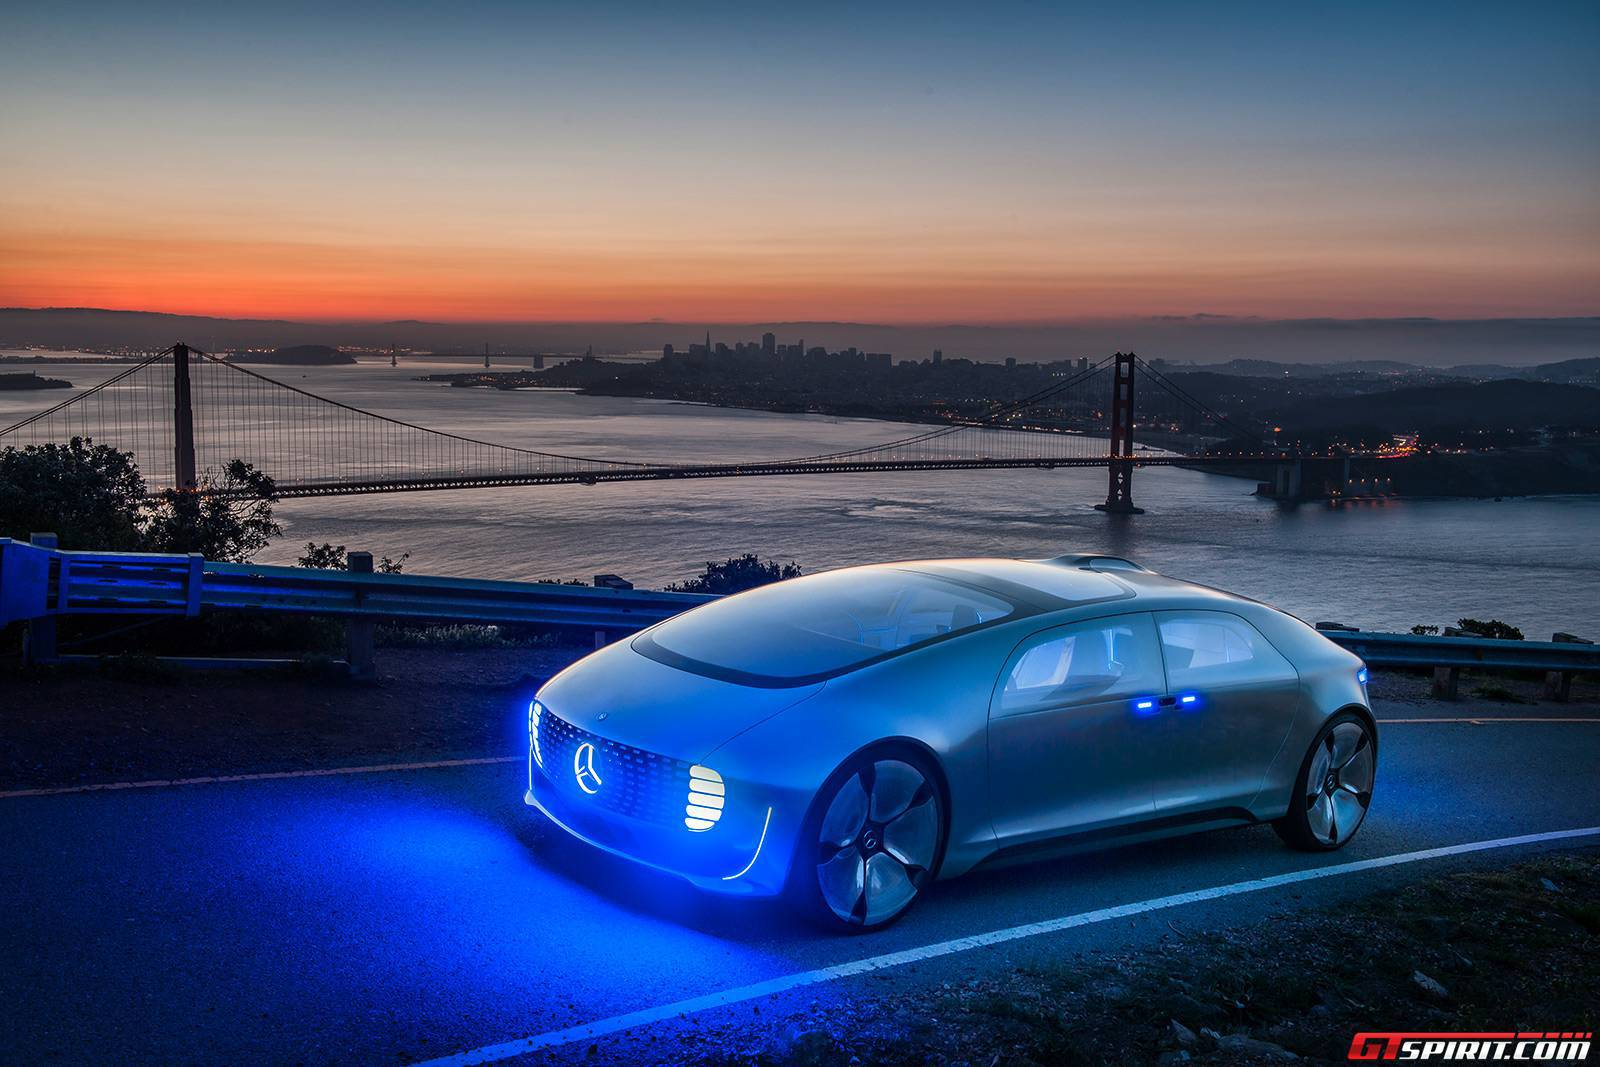 Mercedes-Benz F015 Luxury in Motion Concept 002